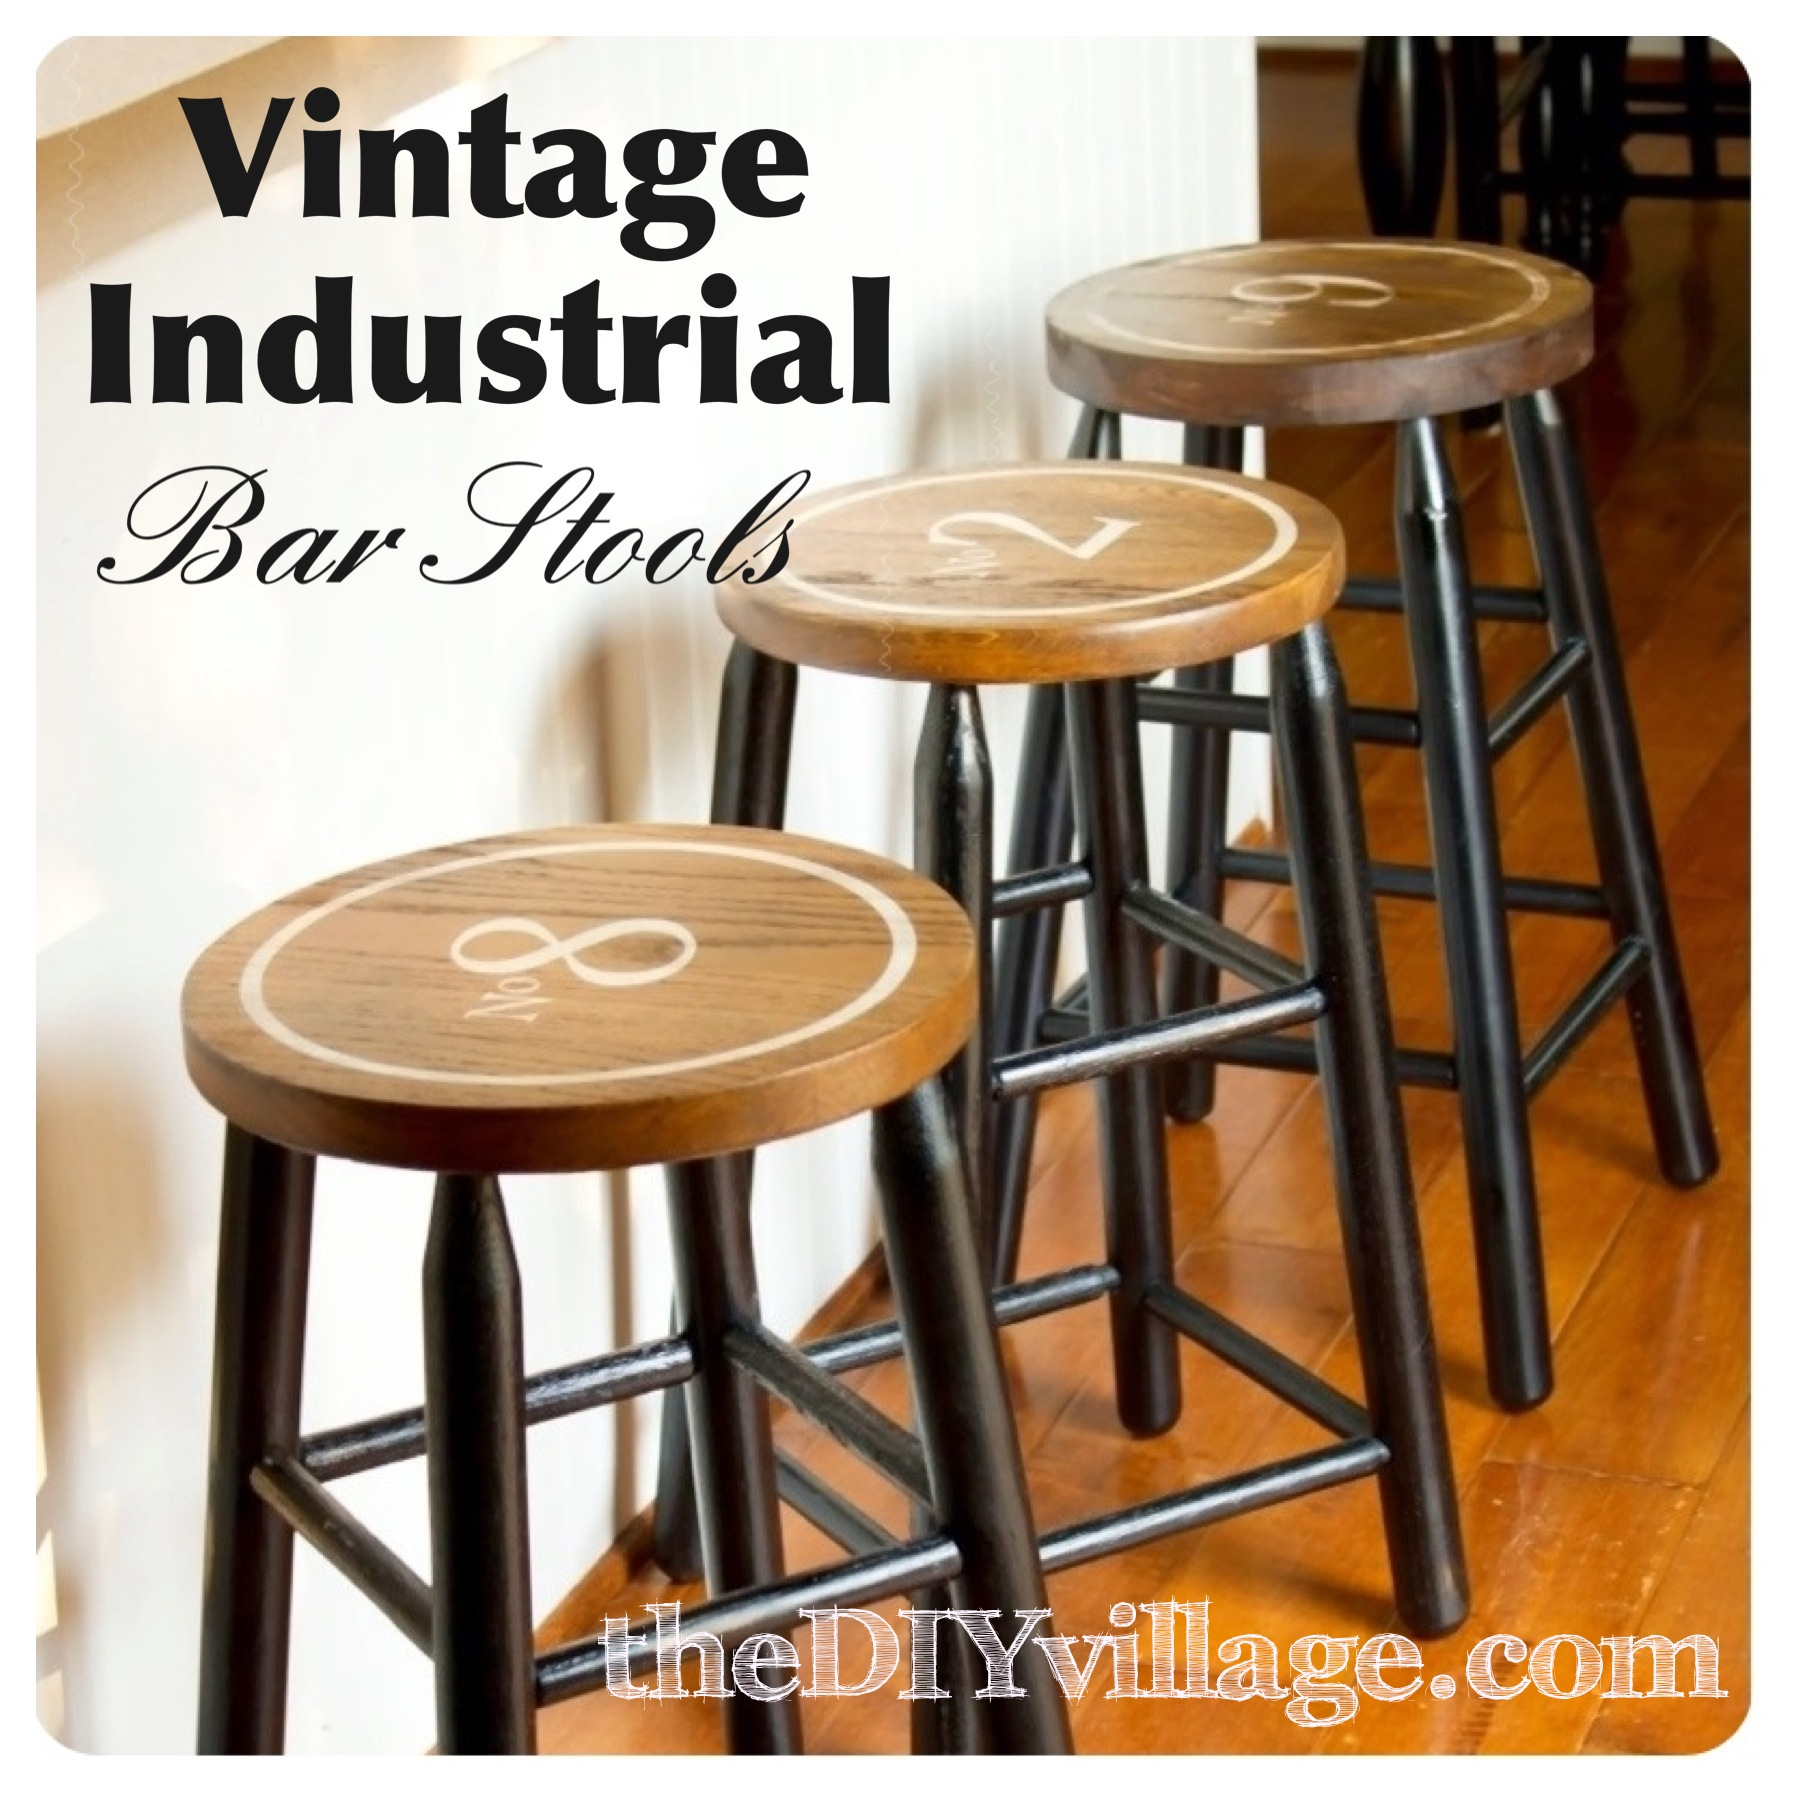 Vintage Industrial Diy Bar Stools The Diy Village